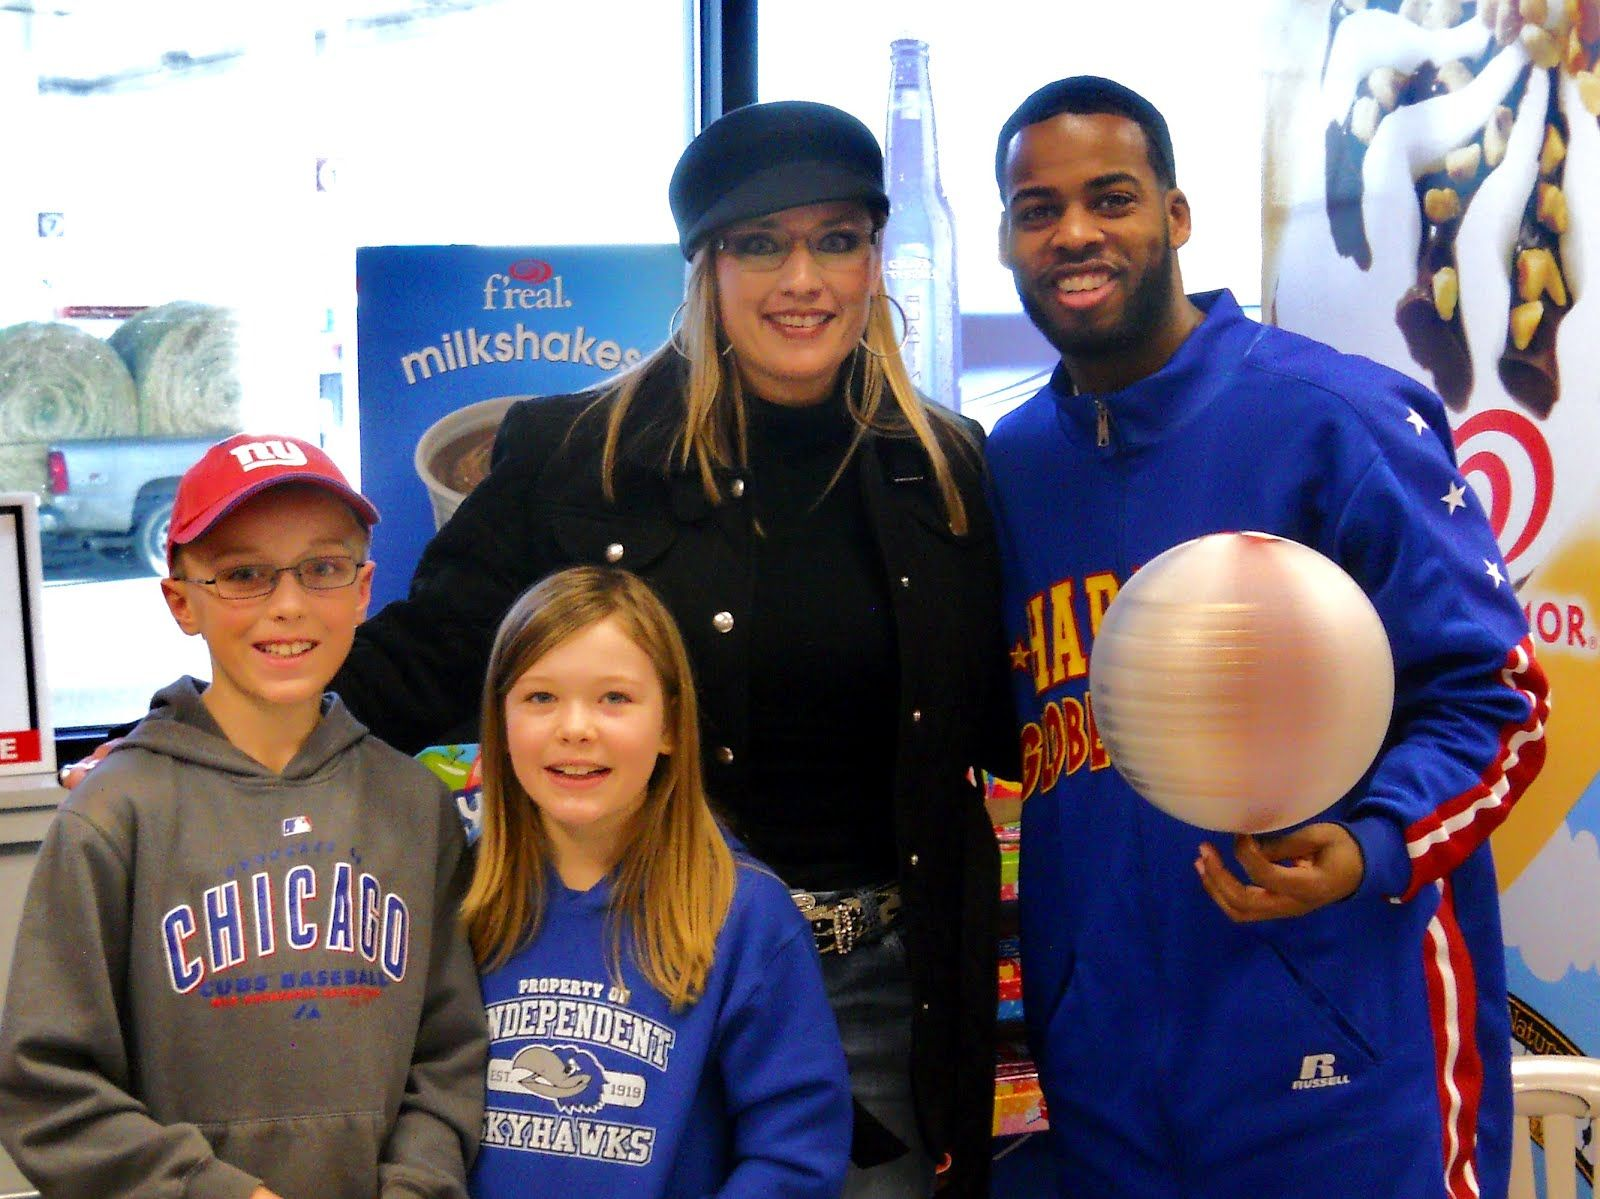 Working with Harlem Globetrotter Ant Atkinson Feb. 2012 to promote local event.